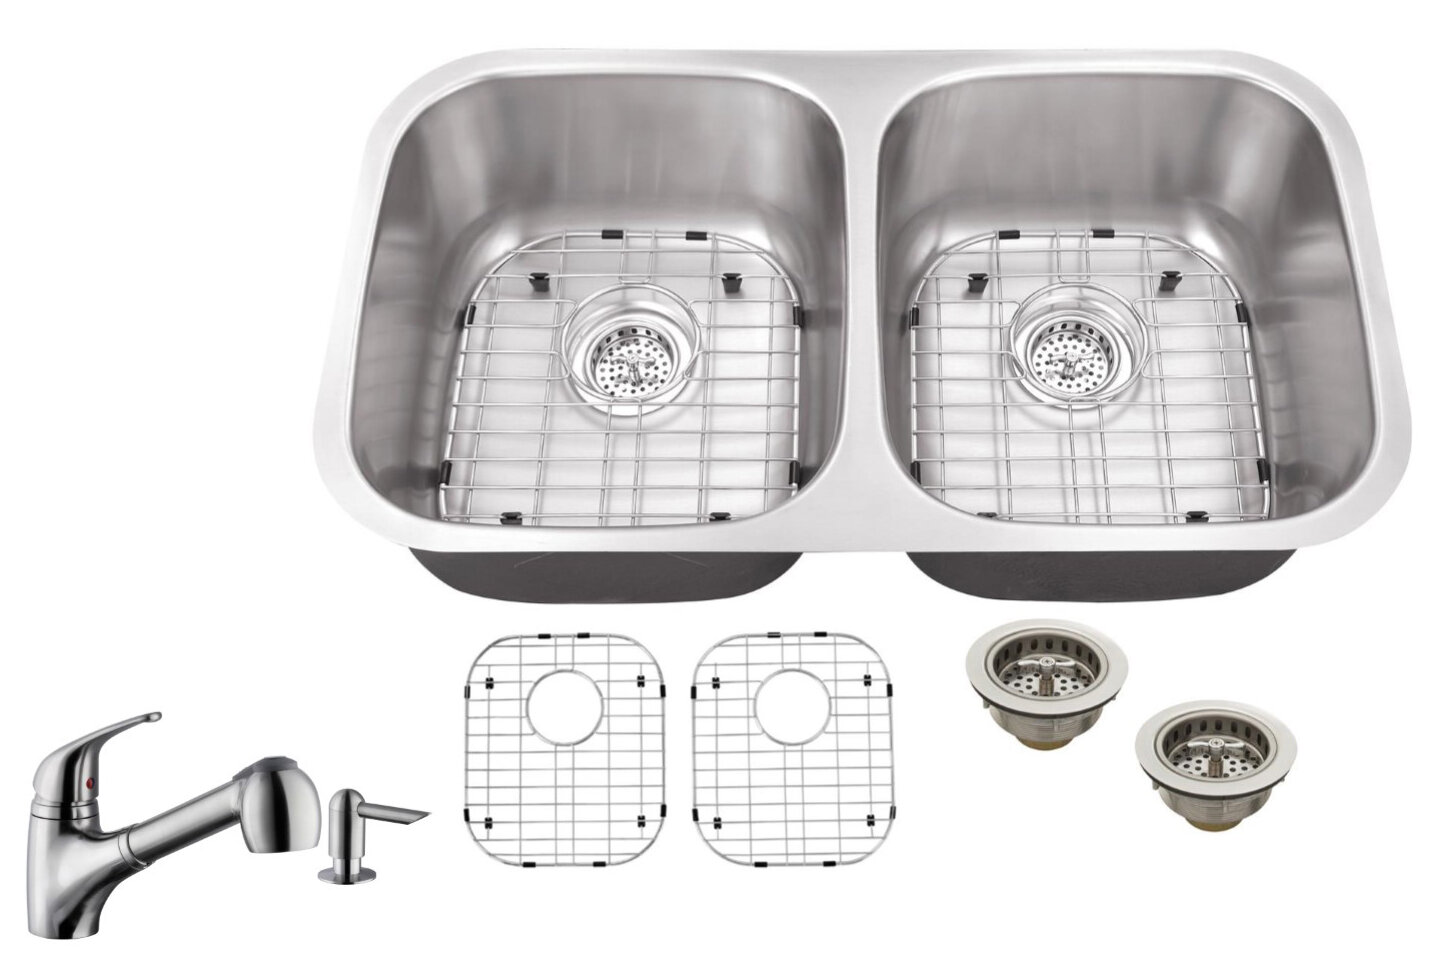 Ss2918p5828 18 Gauge Stainless Steel 29 13 L X 5 W Double Basin Undermount Kitchen Sink With Low Profile Pull Out Faucet